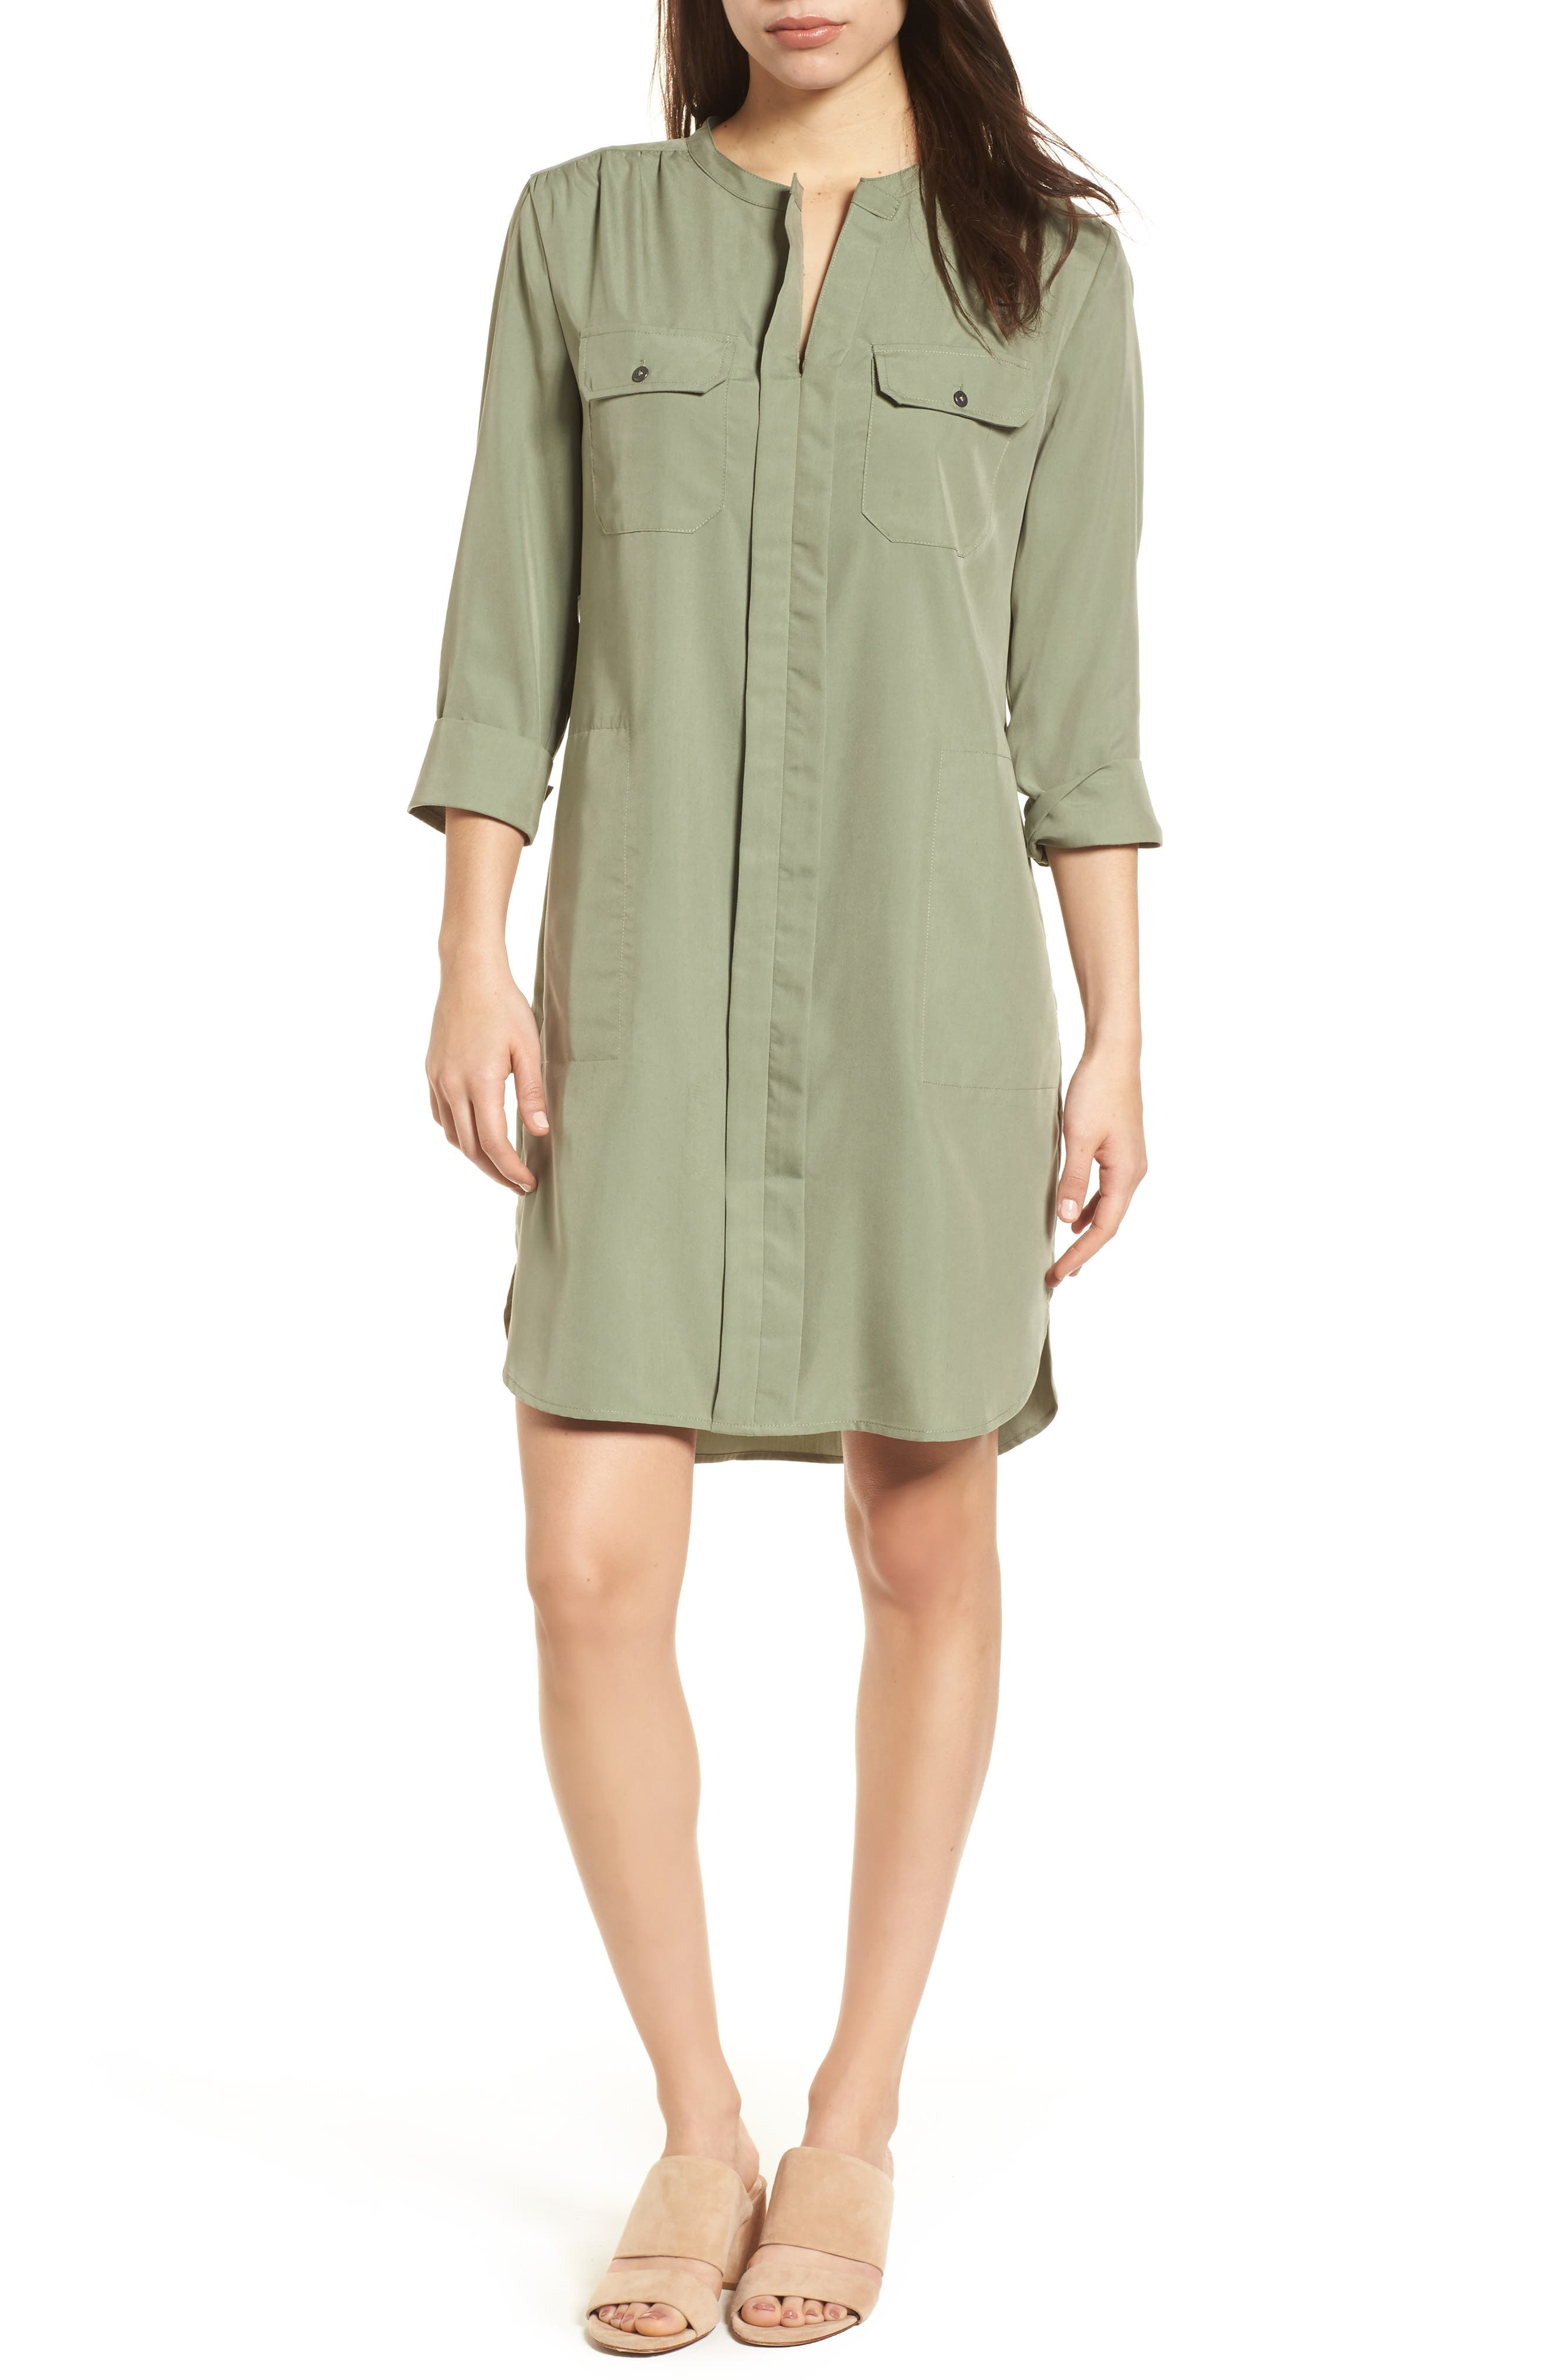 Wanderlust Shirtdress,                             Main thumbnail 1, color,                             Spring Moss